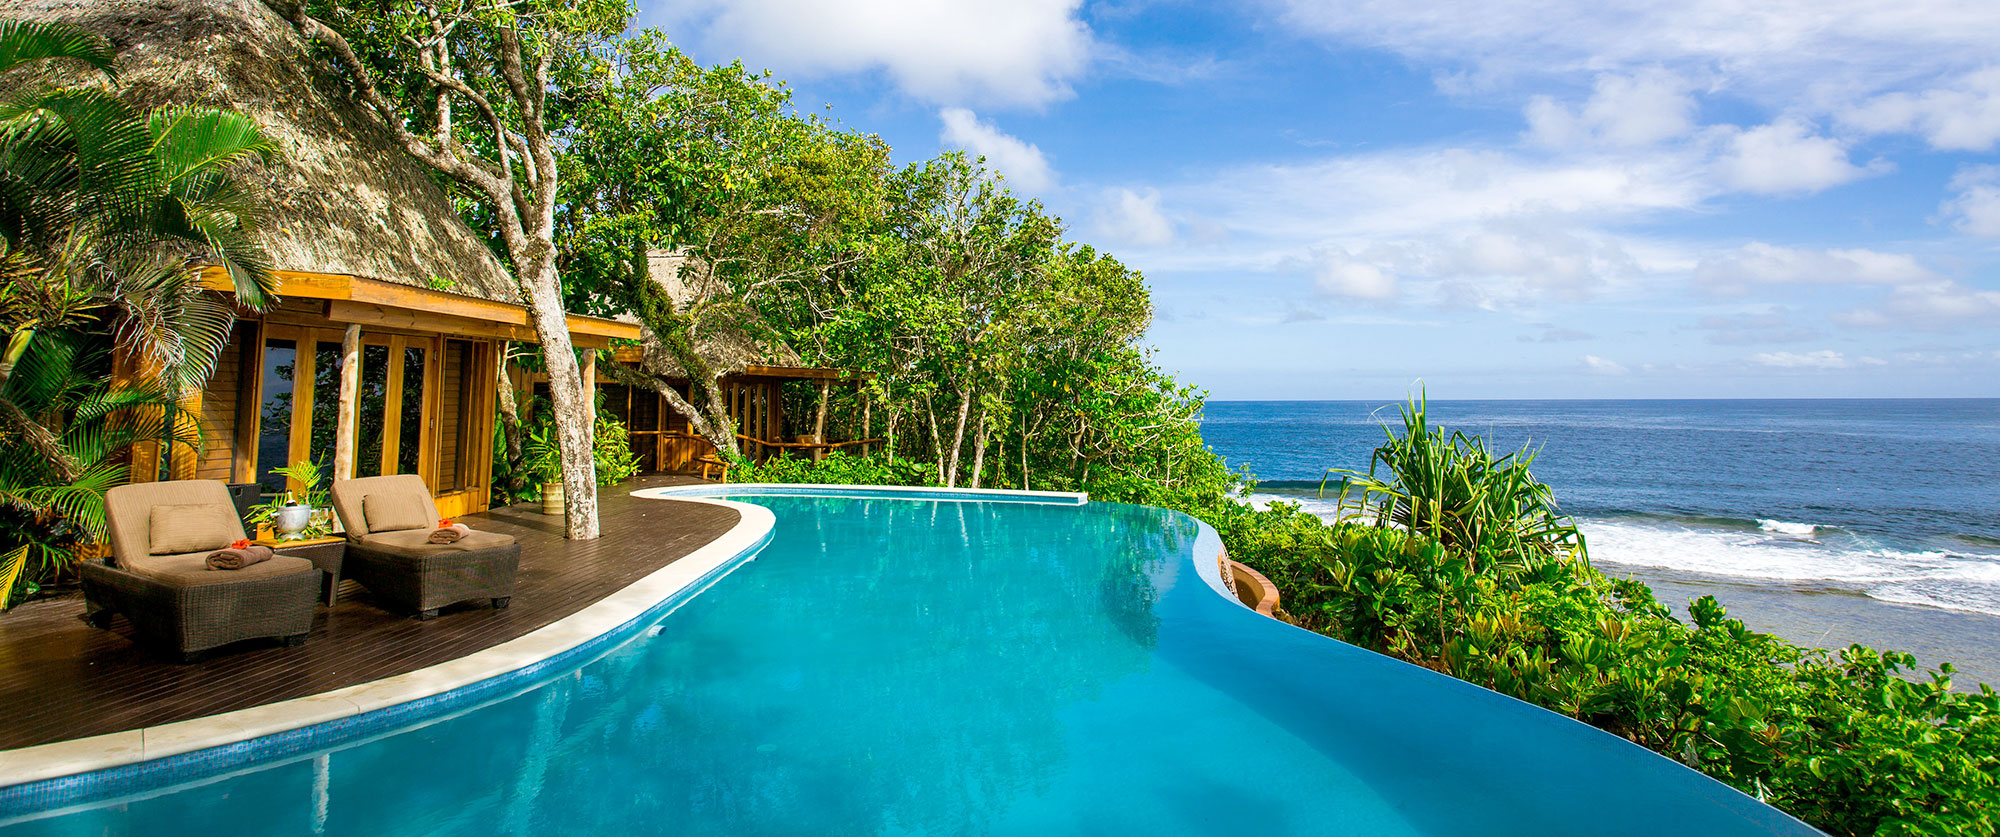 Luxury Fiji honeymoon - Namale Resort & Spa - All Inclusive Honeymoon